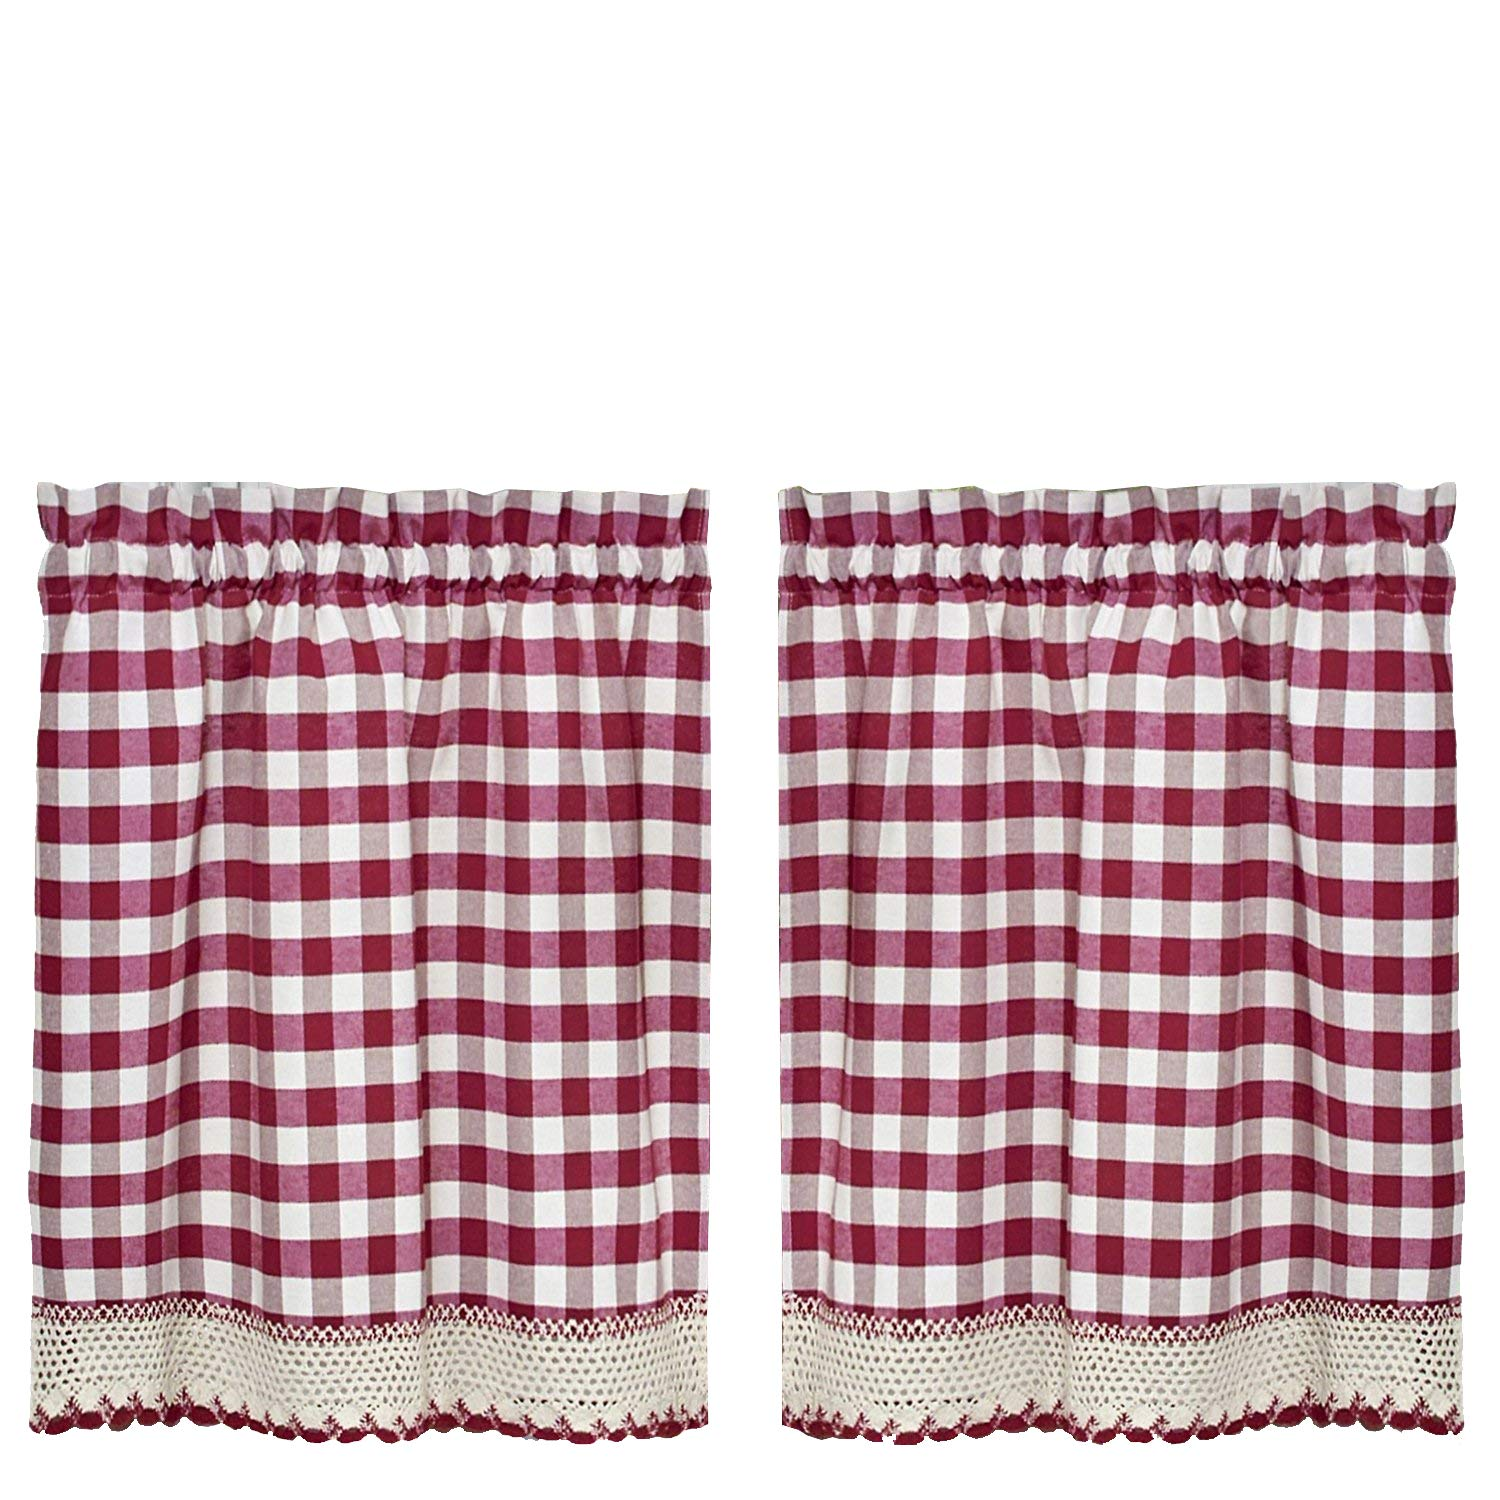 GoodGram Buffalo Check Plaid Gingham Custom Fit Window Curtain Treatments Assorted Colors, Styles & Sizes (36 in. Tier Pair, Burgundy)